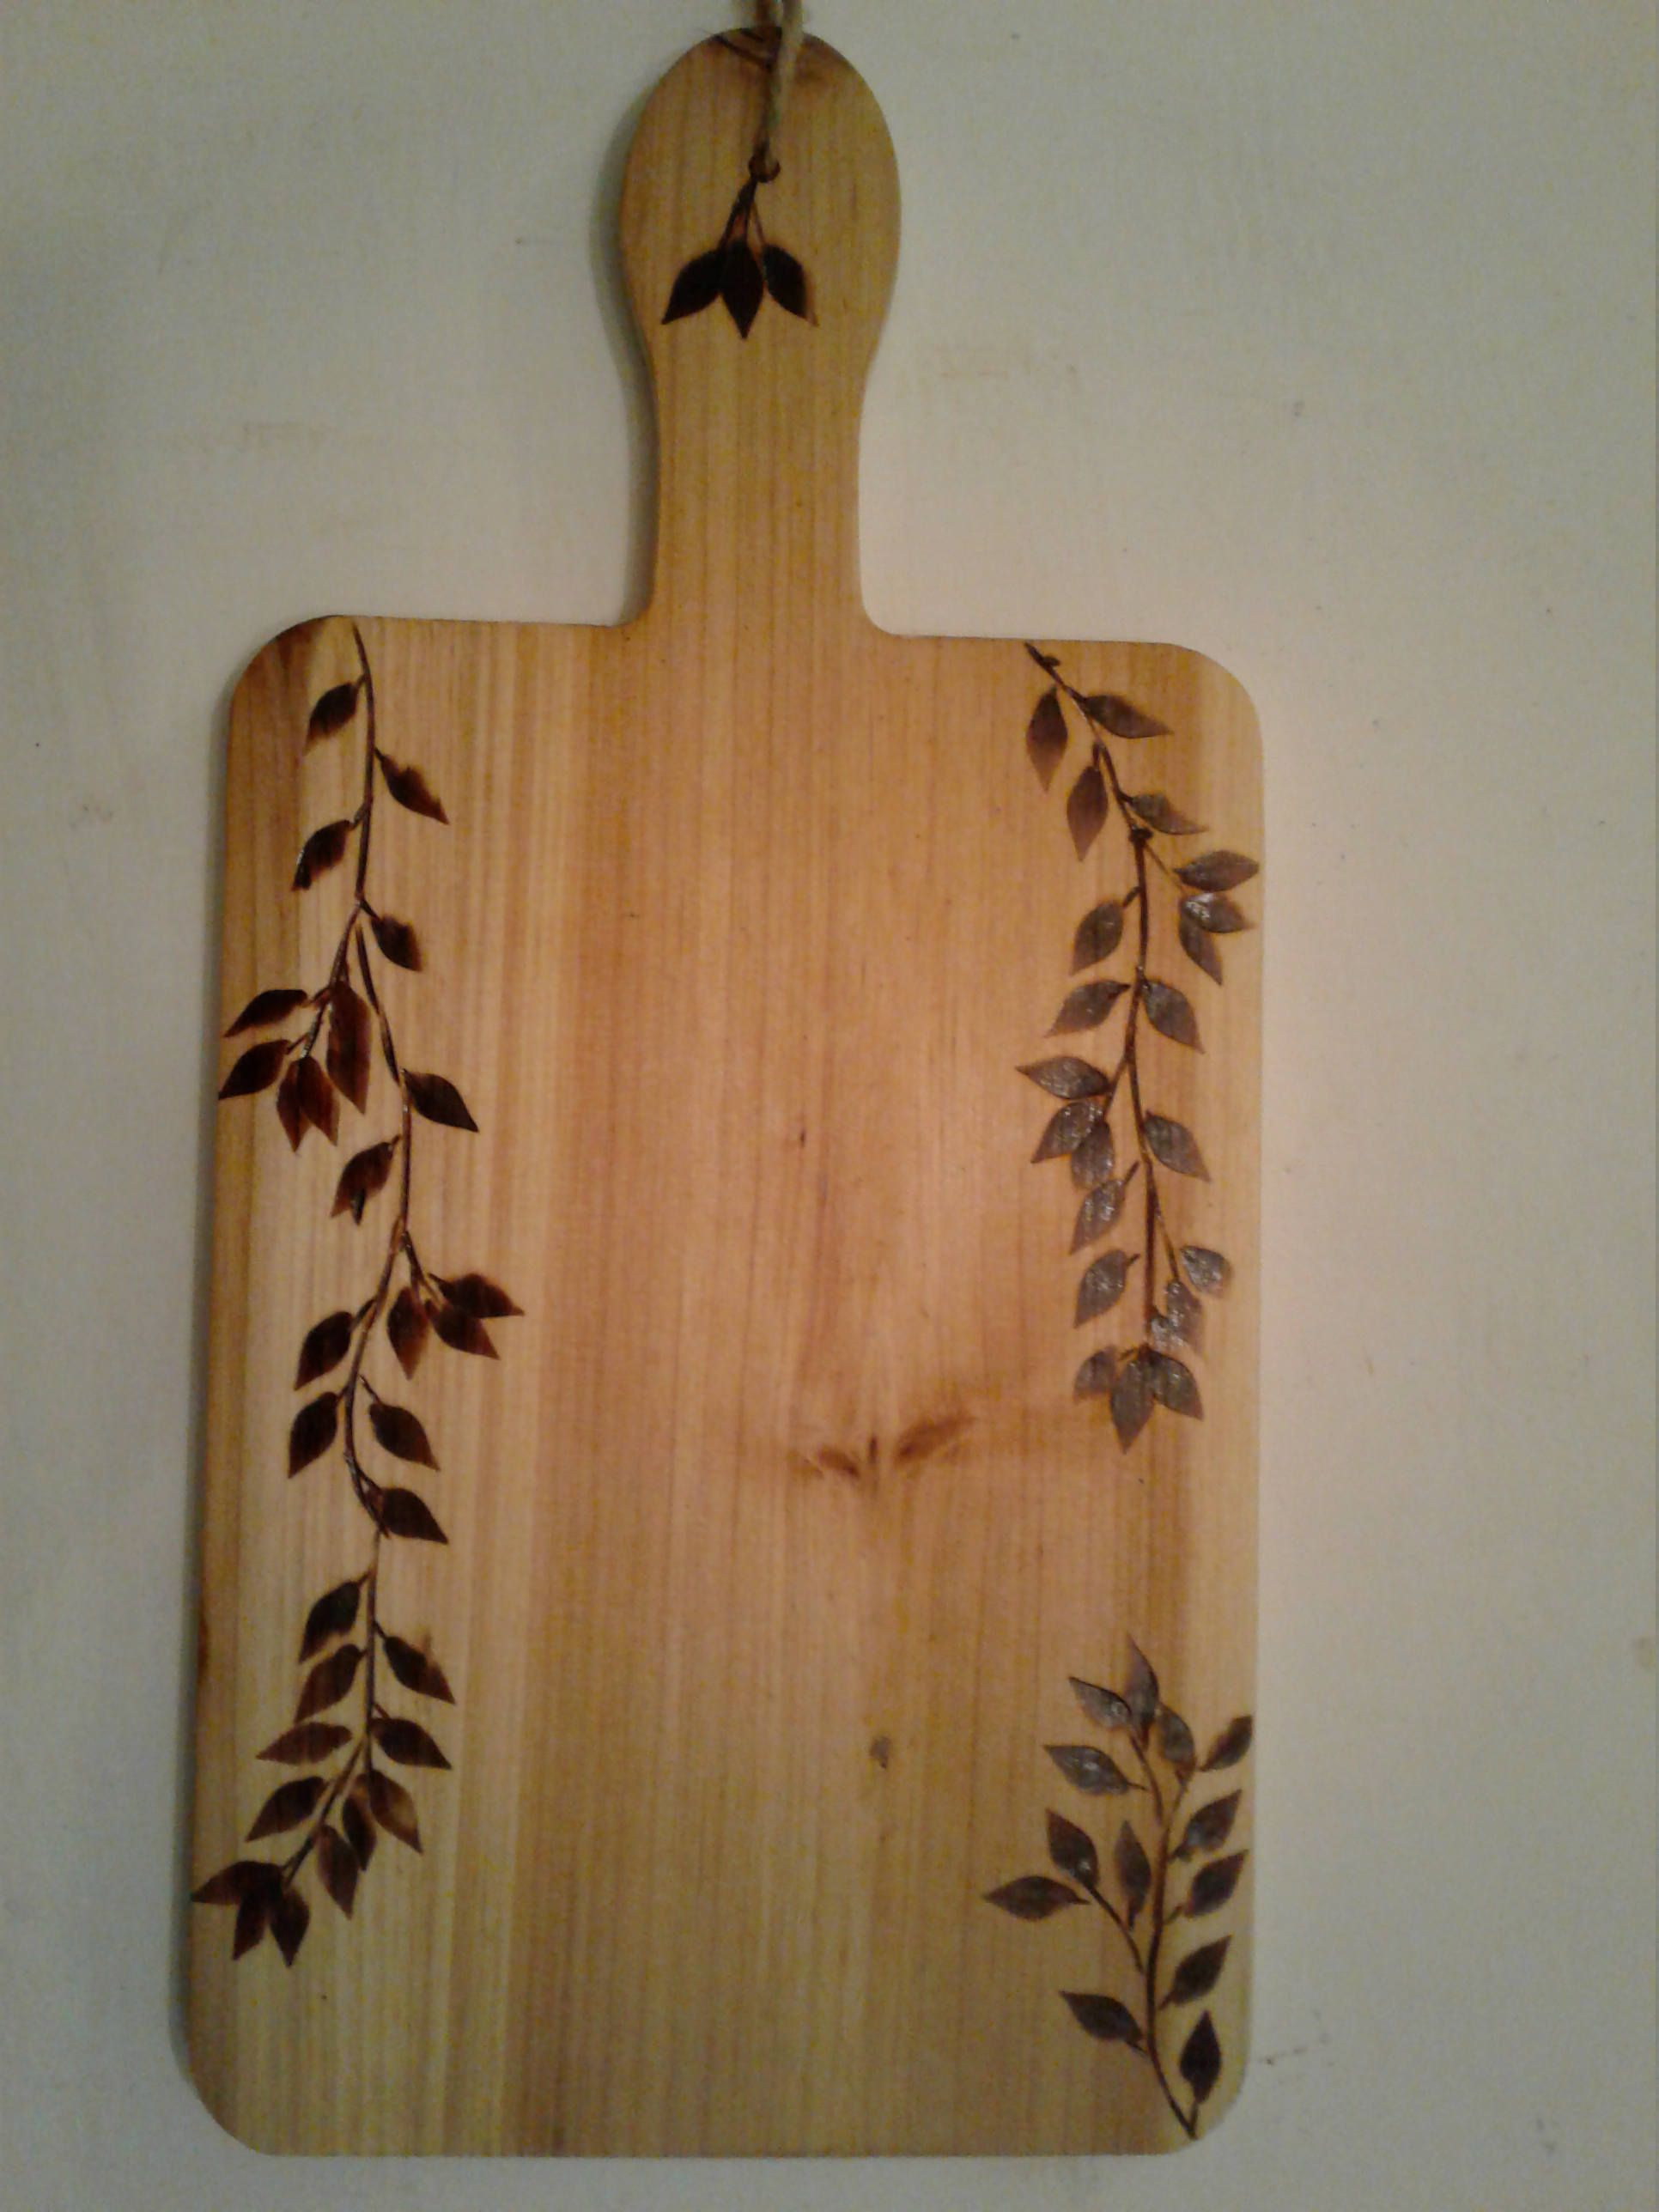 Wood burned cutting board by Reclaimed1026 on Etsy